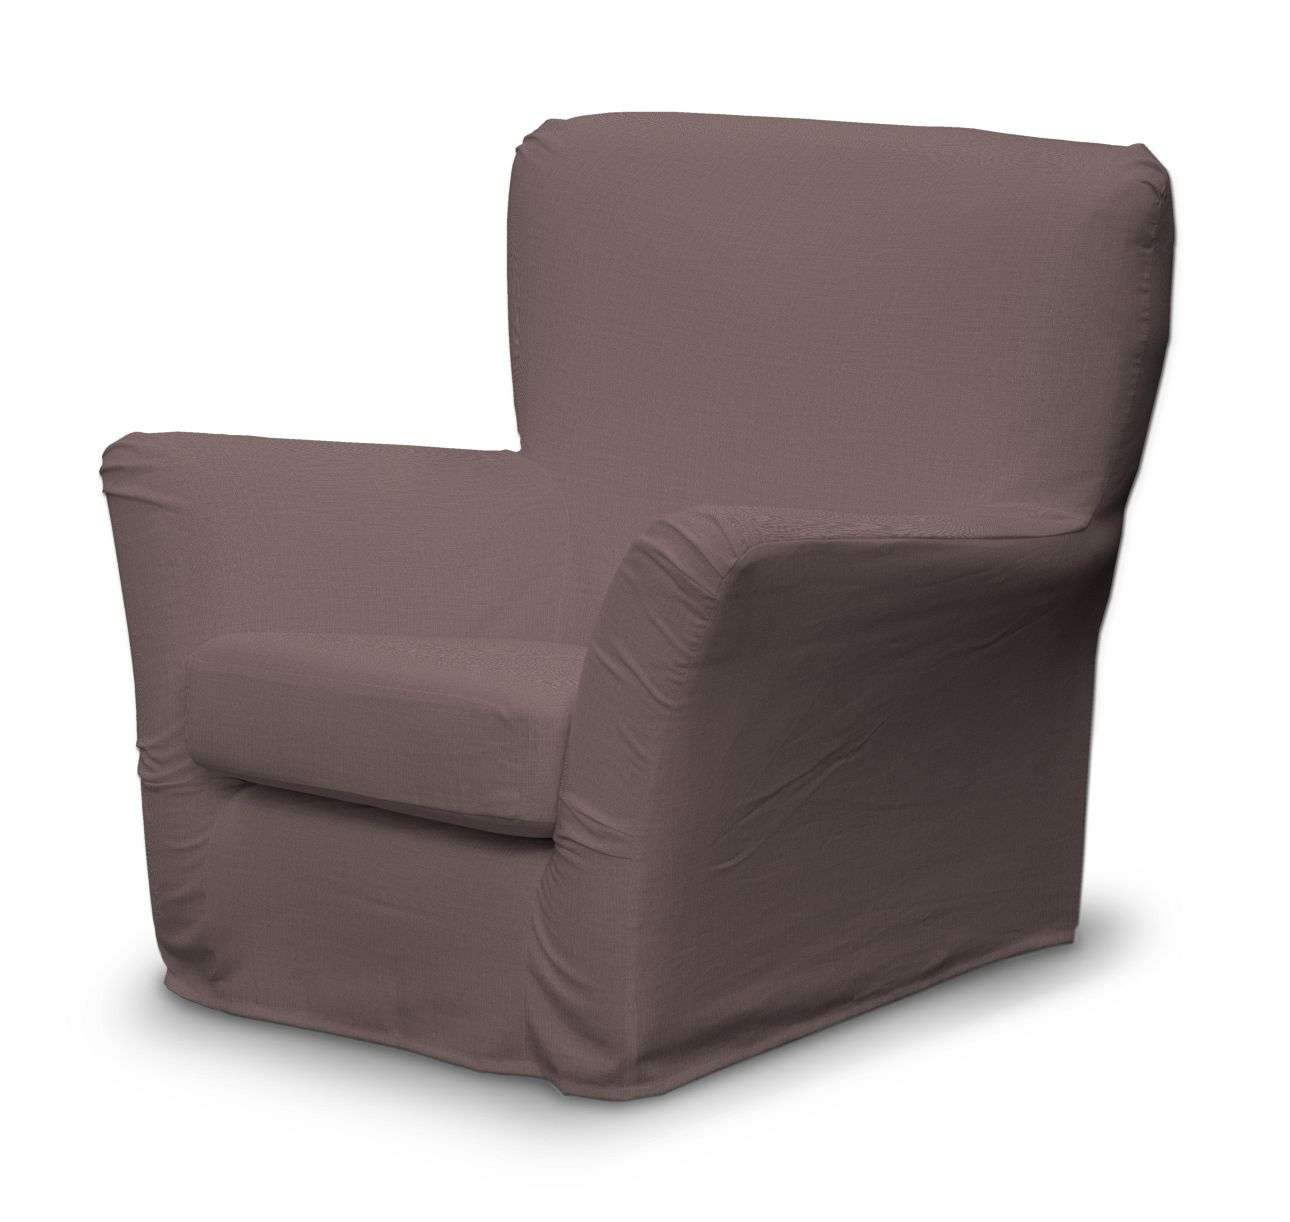 Tomelilla armchair  Tomelilla armchair in collection Living, fabric: 106-63